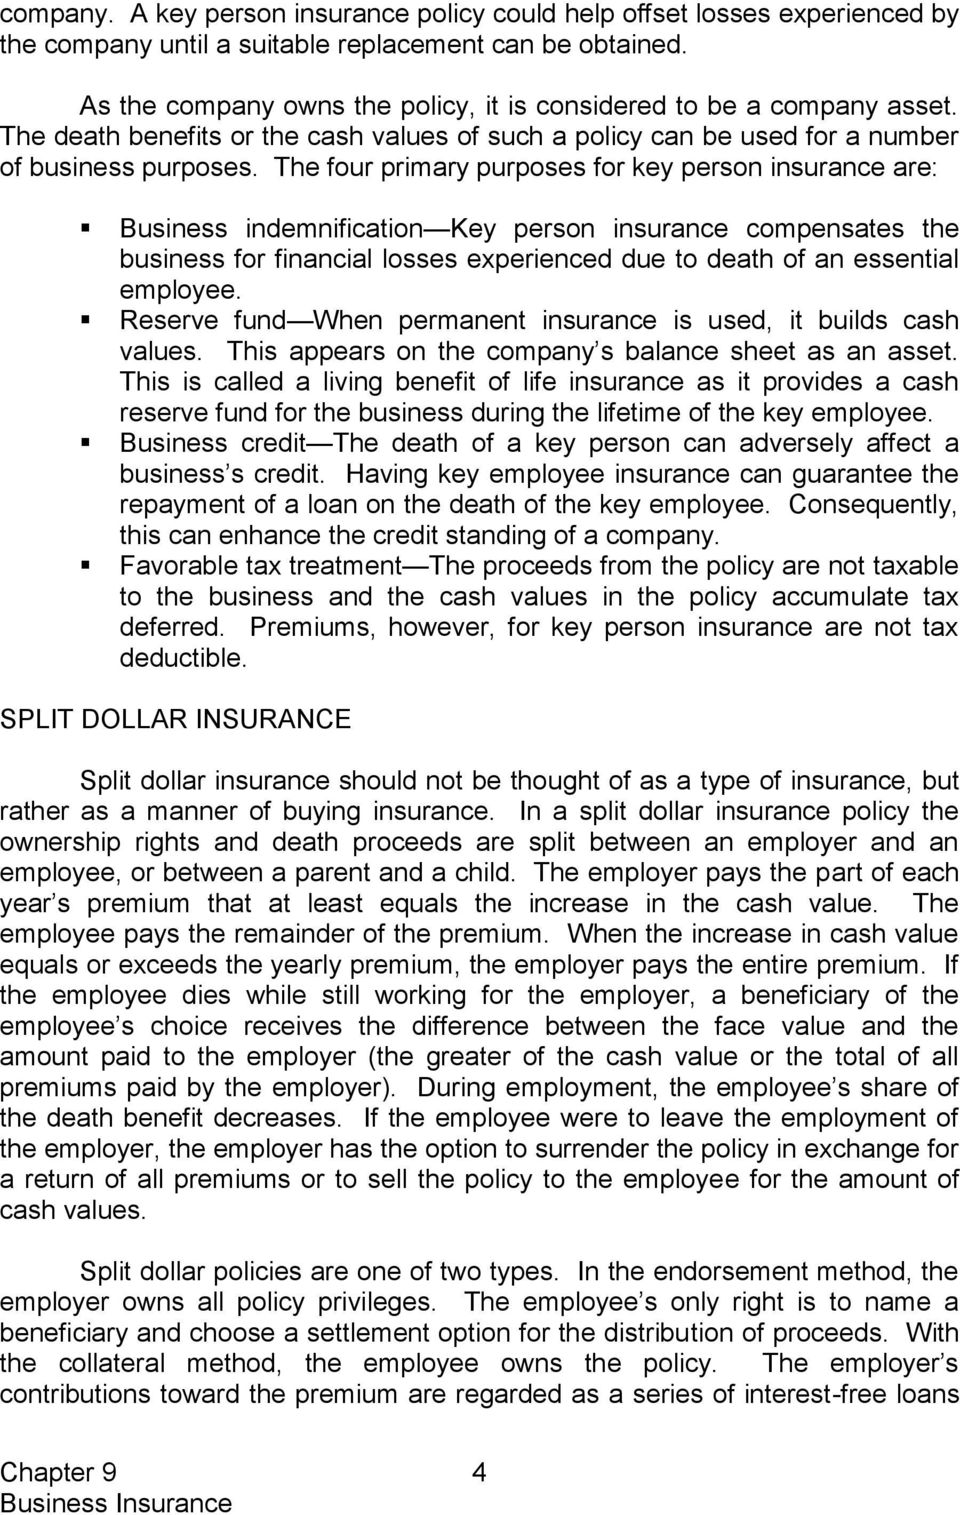 The four primary purposes for key person insurance are: Business indemnification Key person insurance compensates the business for financial losses experienced due to death of an essential employee.